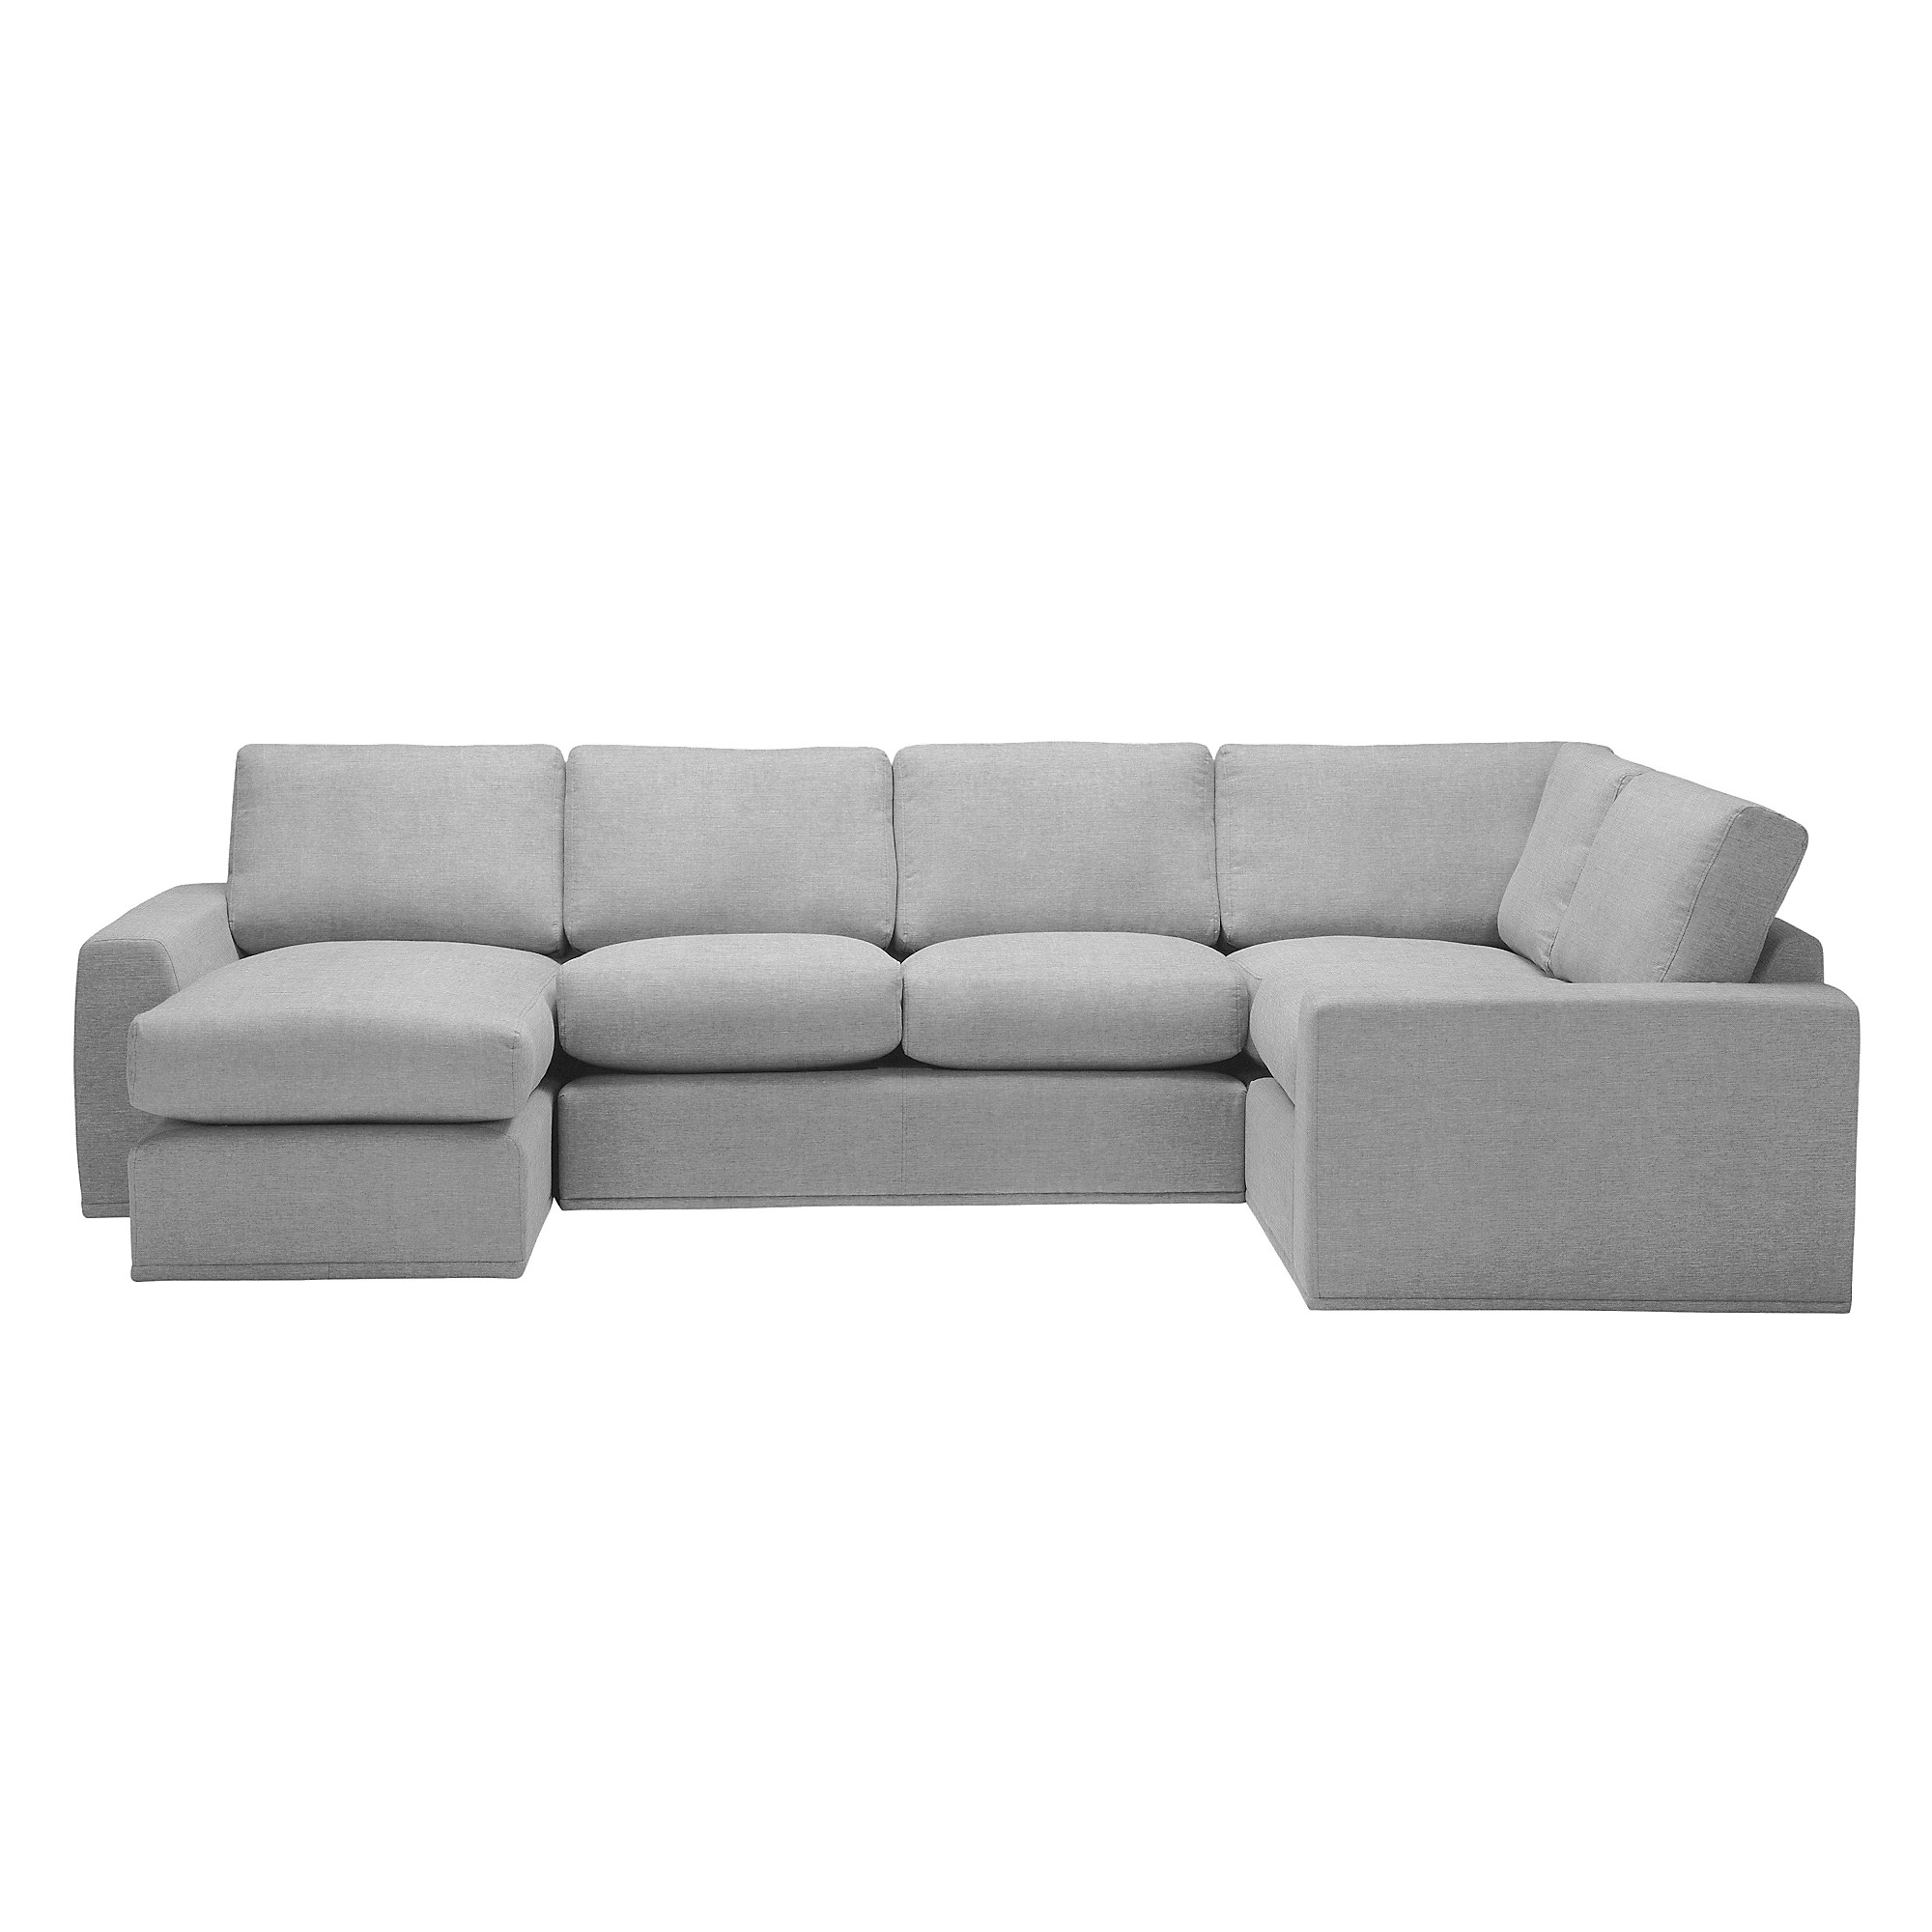 House by john lewis finlay ii lhf rhf modular corner for Chaise end sofas